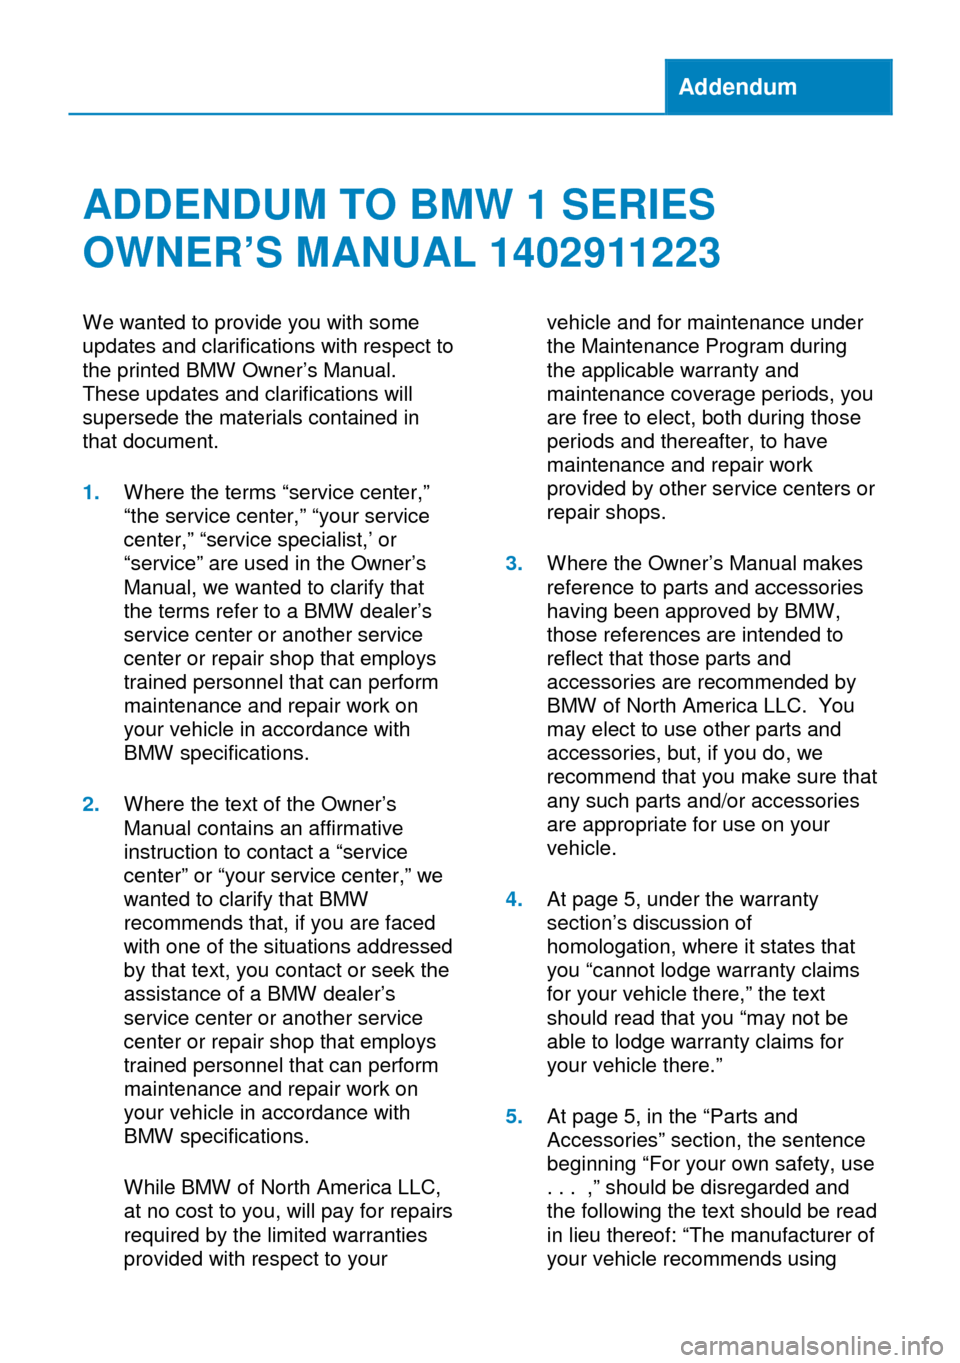 BMW 1 SERIES 2013 E82 Owners Manual Addendum ADDENDUM TO BMW 1 SERIES OWNER'S MANUAL 1402911223 We wanted to provide you with some updates and clarifications with respect to the printed BMW Owner's Manual. These updates and clarific